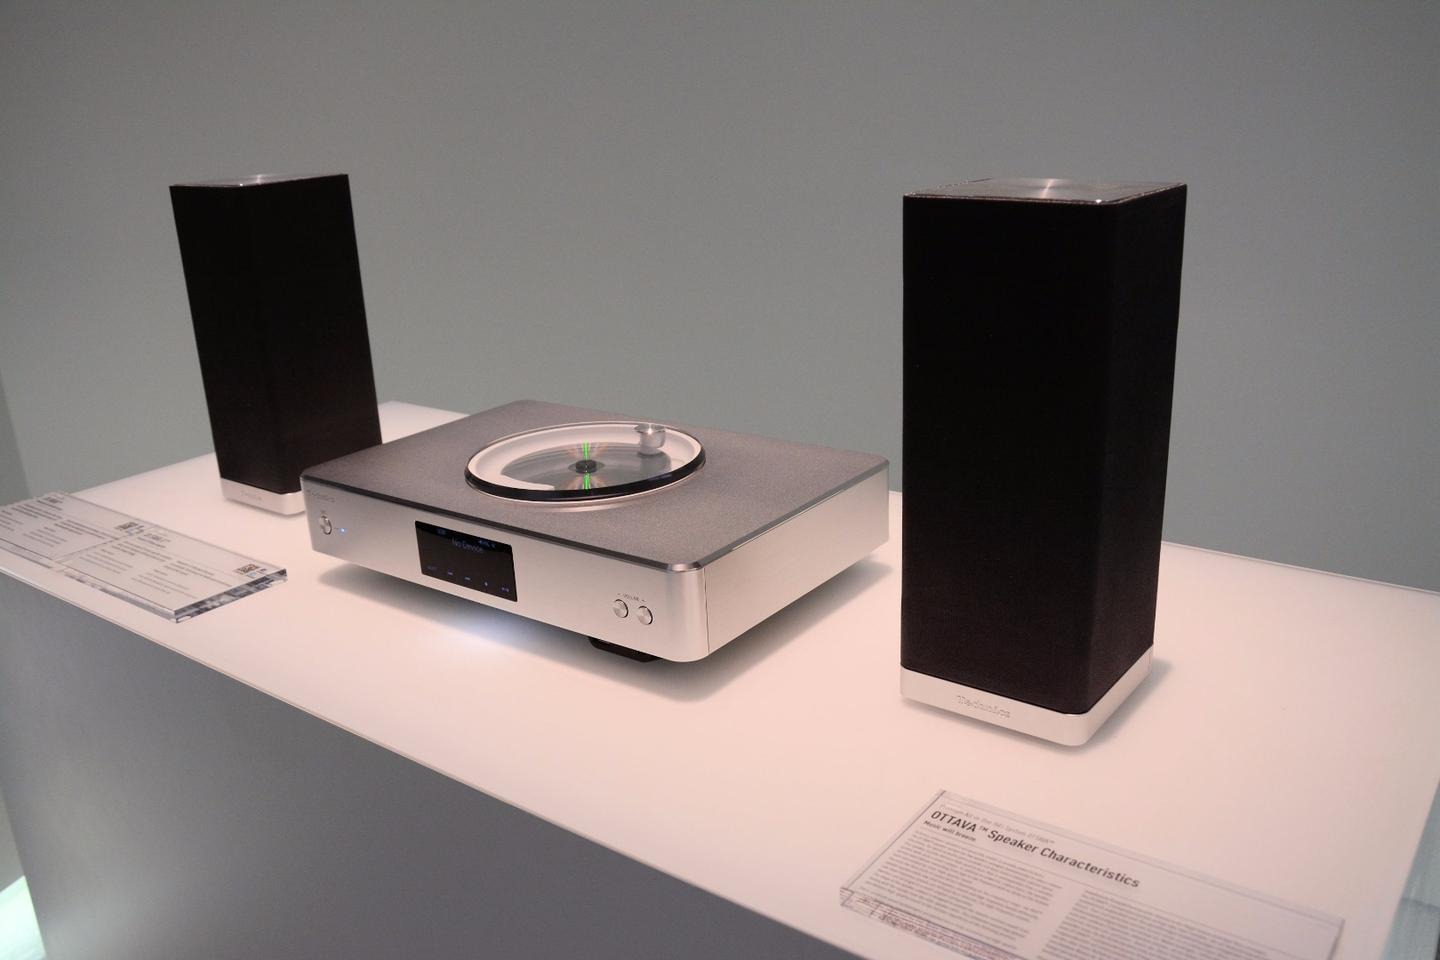 Designed to complement the living room, the Technics Premium Class SC-C500 all-in-one hi-fi system has a high end look